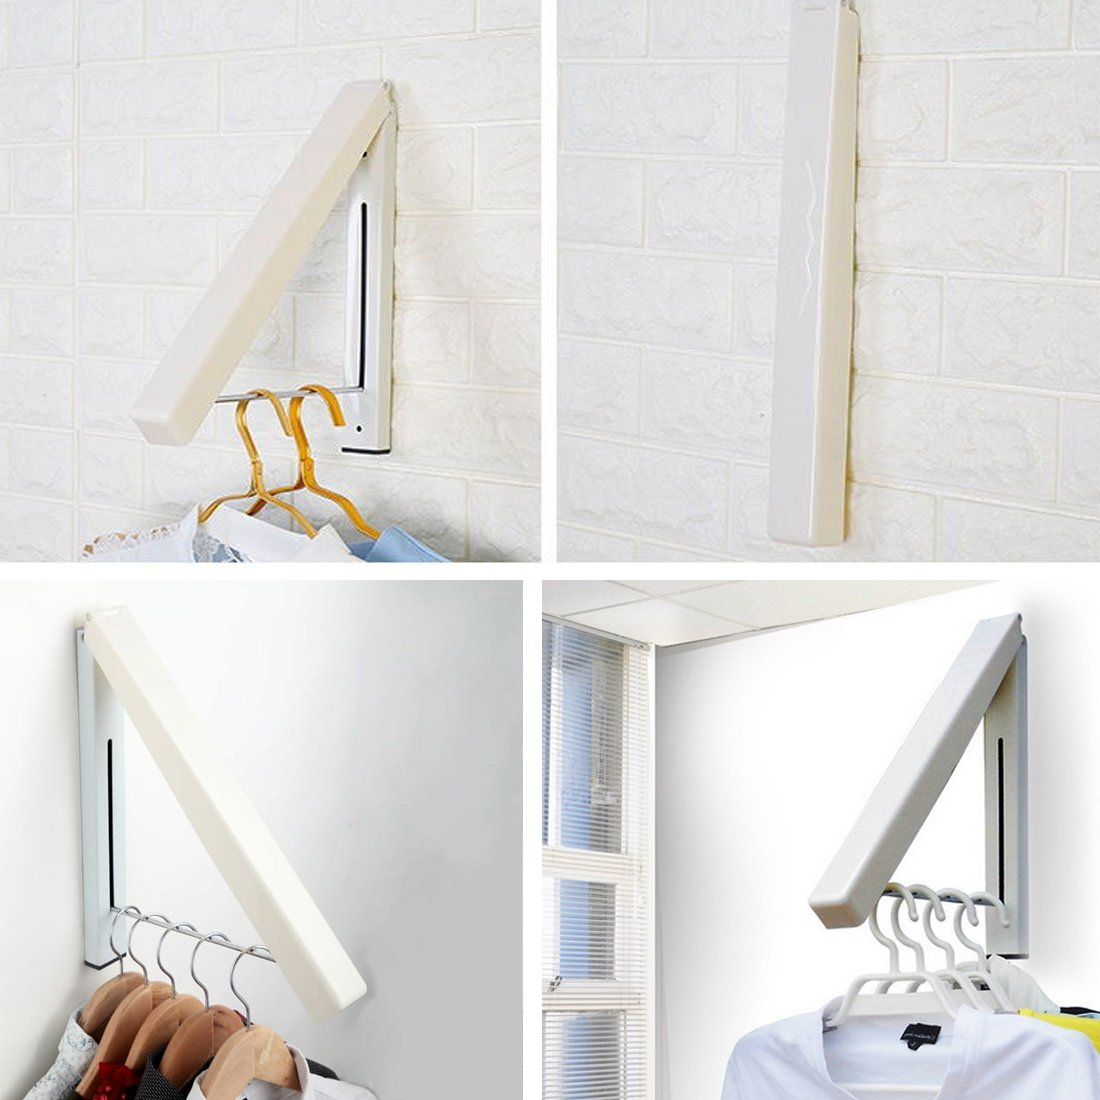 NEEGO Percheros De Pared Plegable Suspensión de Pared Percheros Plegable Colgador De Montaje Colgante de Ropa Plegable Ajustable Closet de Lavandería Para ...